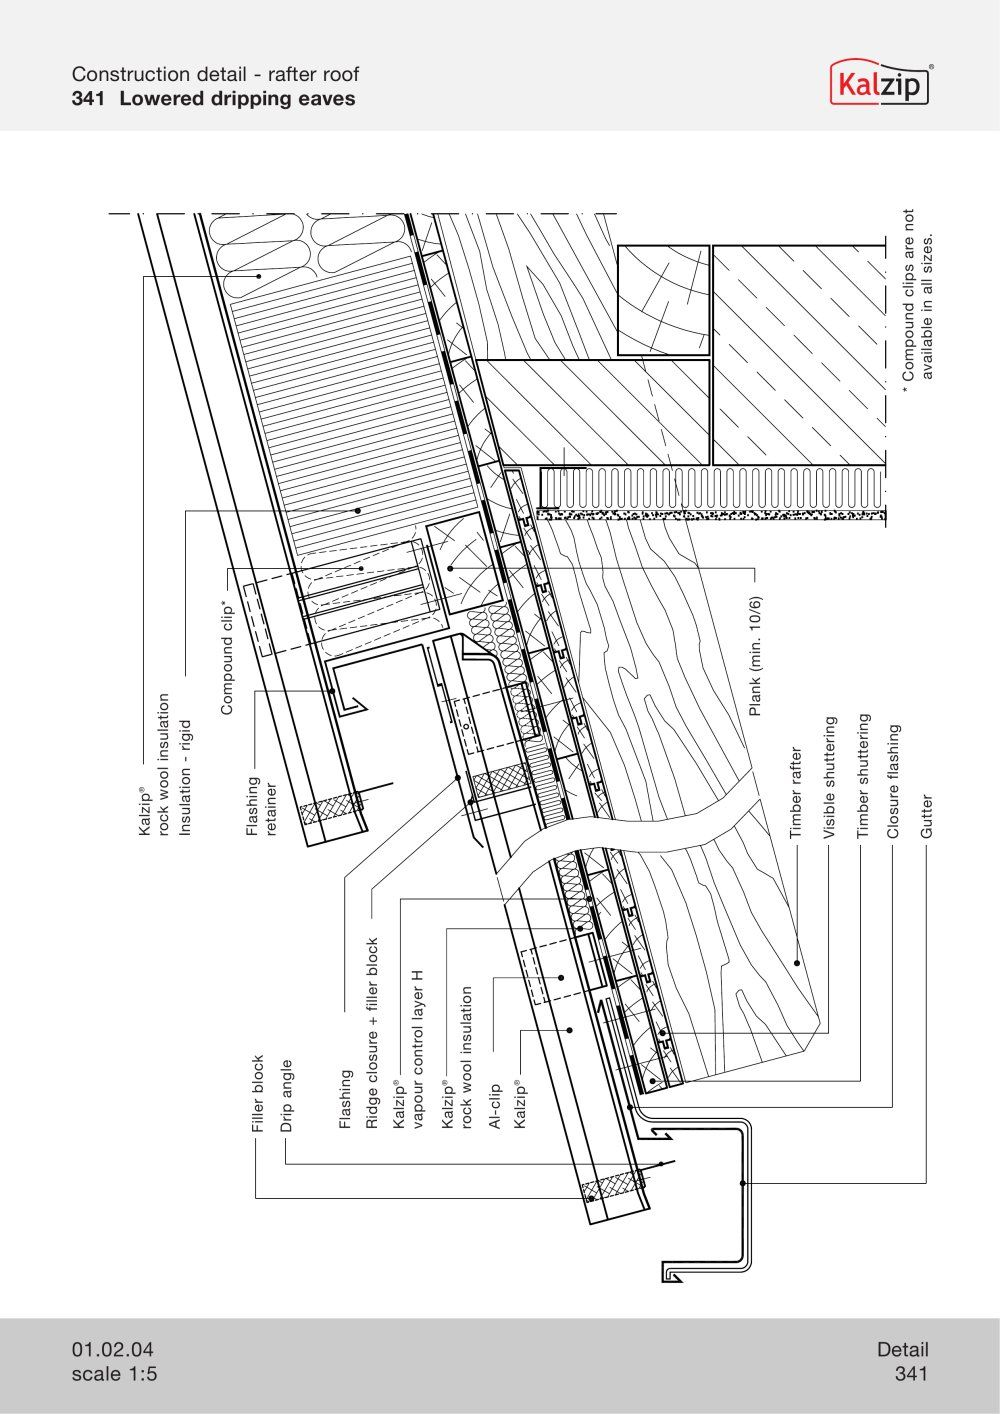 Kalzip Construction Details Archiexpo Gutters Detailed Drawings Aluminum Roof